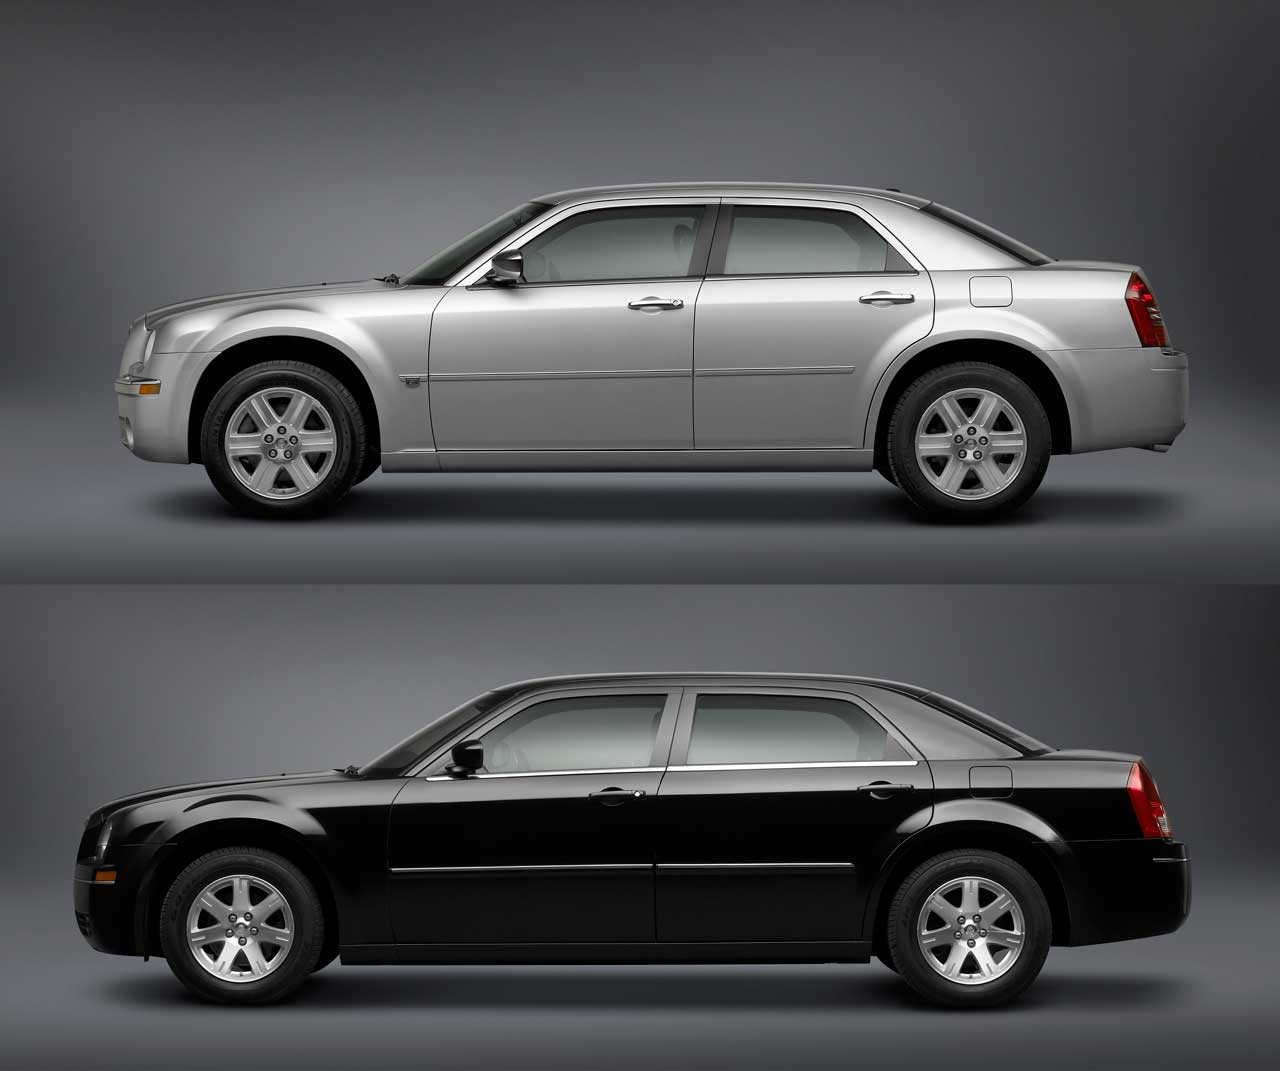 2006 Lincoln Town Car For Sale: Helfman Cars